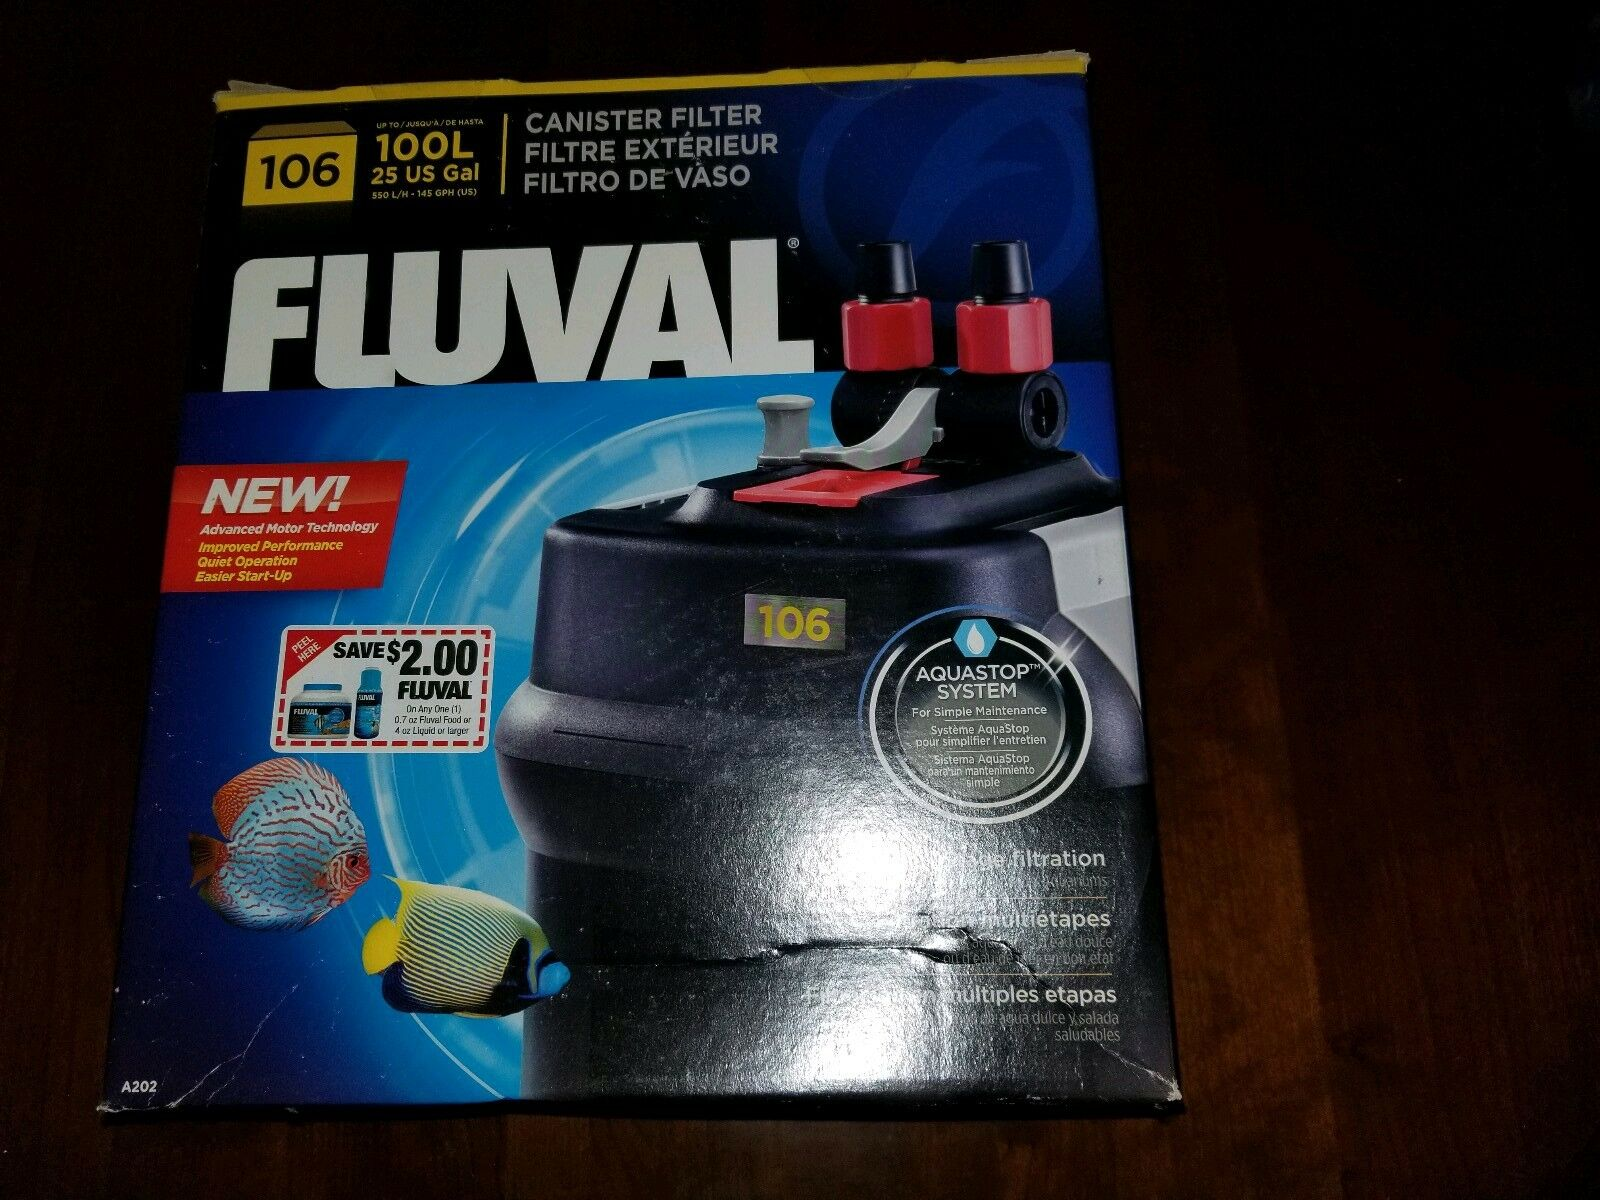 New Fluval 106 External Canister Filter - For Tanks up to 25 Gal.  145 US GPH